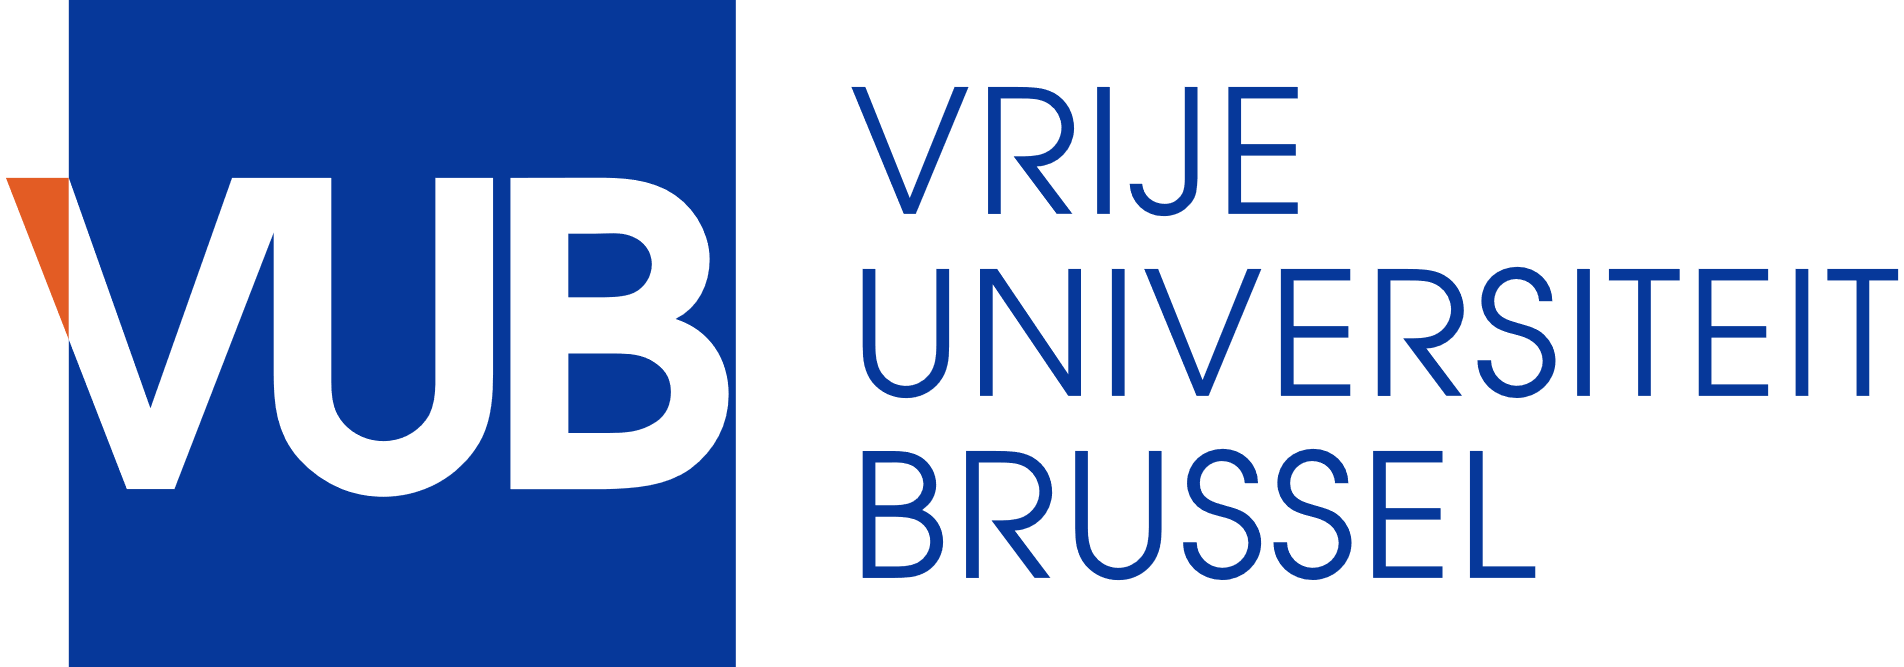 Third Place Europe - Vrije Universiteit Brussels